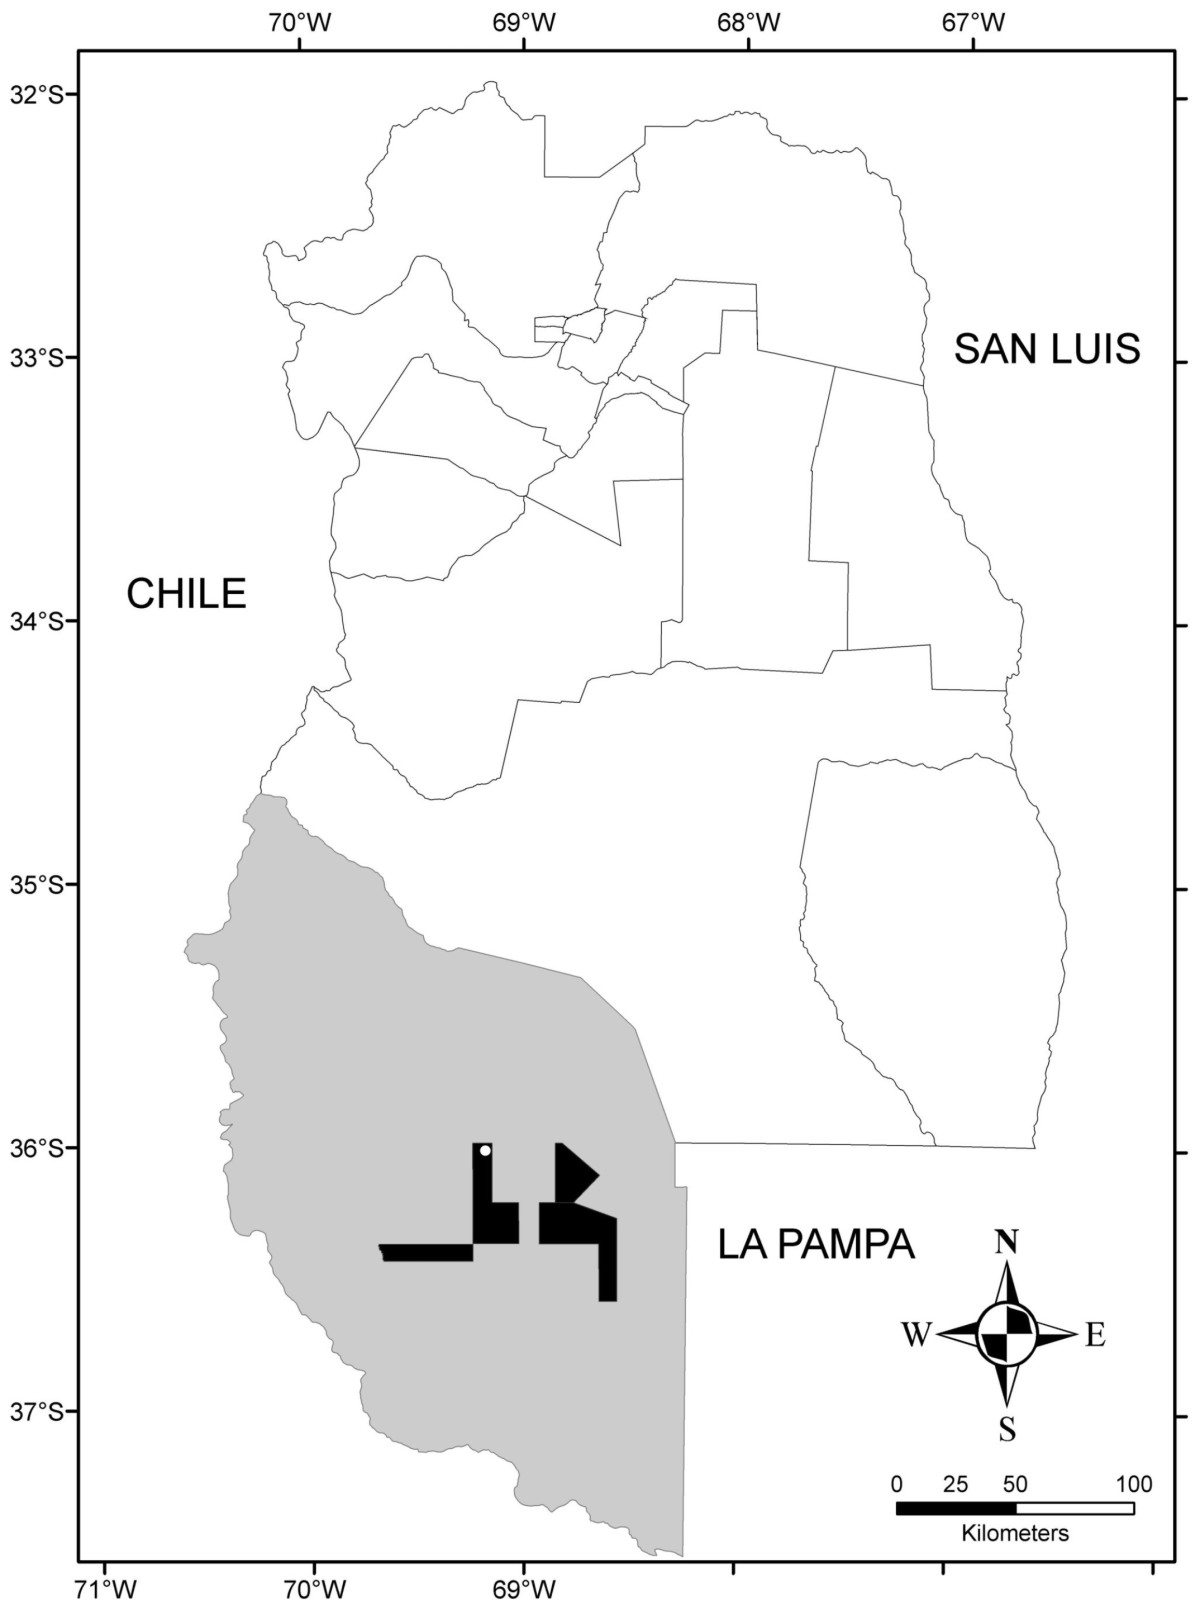 guanaco management by pastoralists in the southern andes springerlink Typical Snow Removal Contract open image in new window